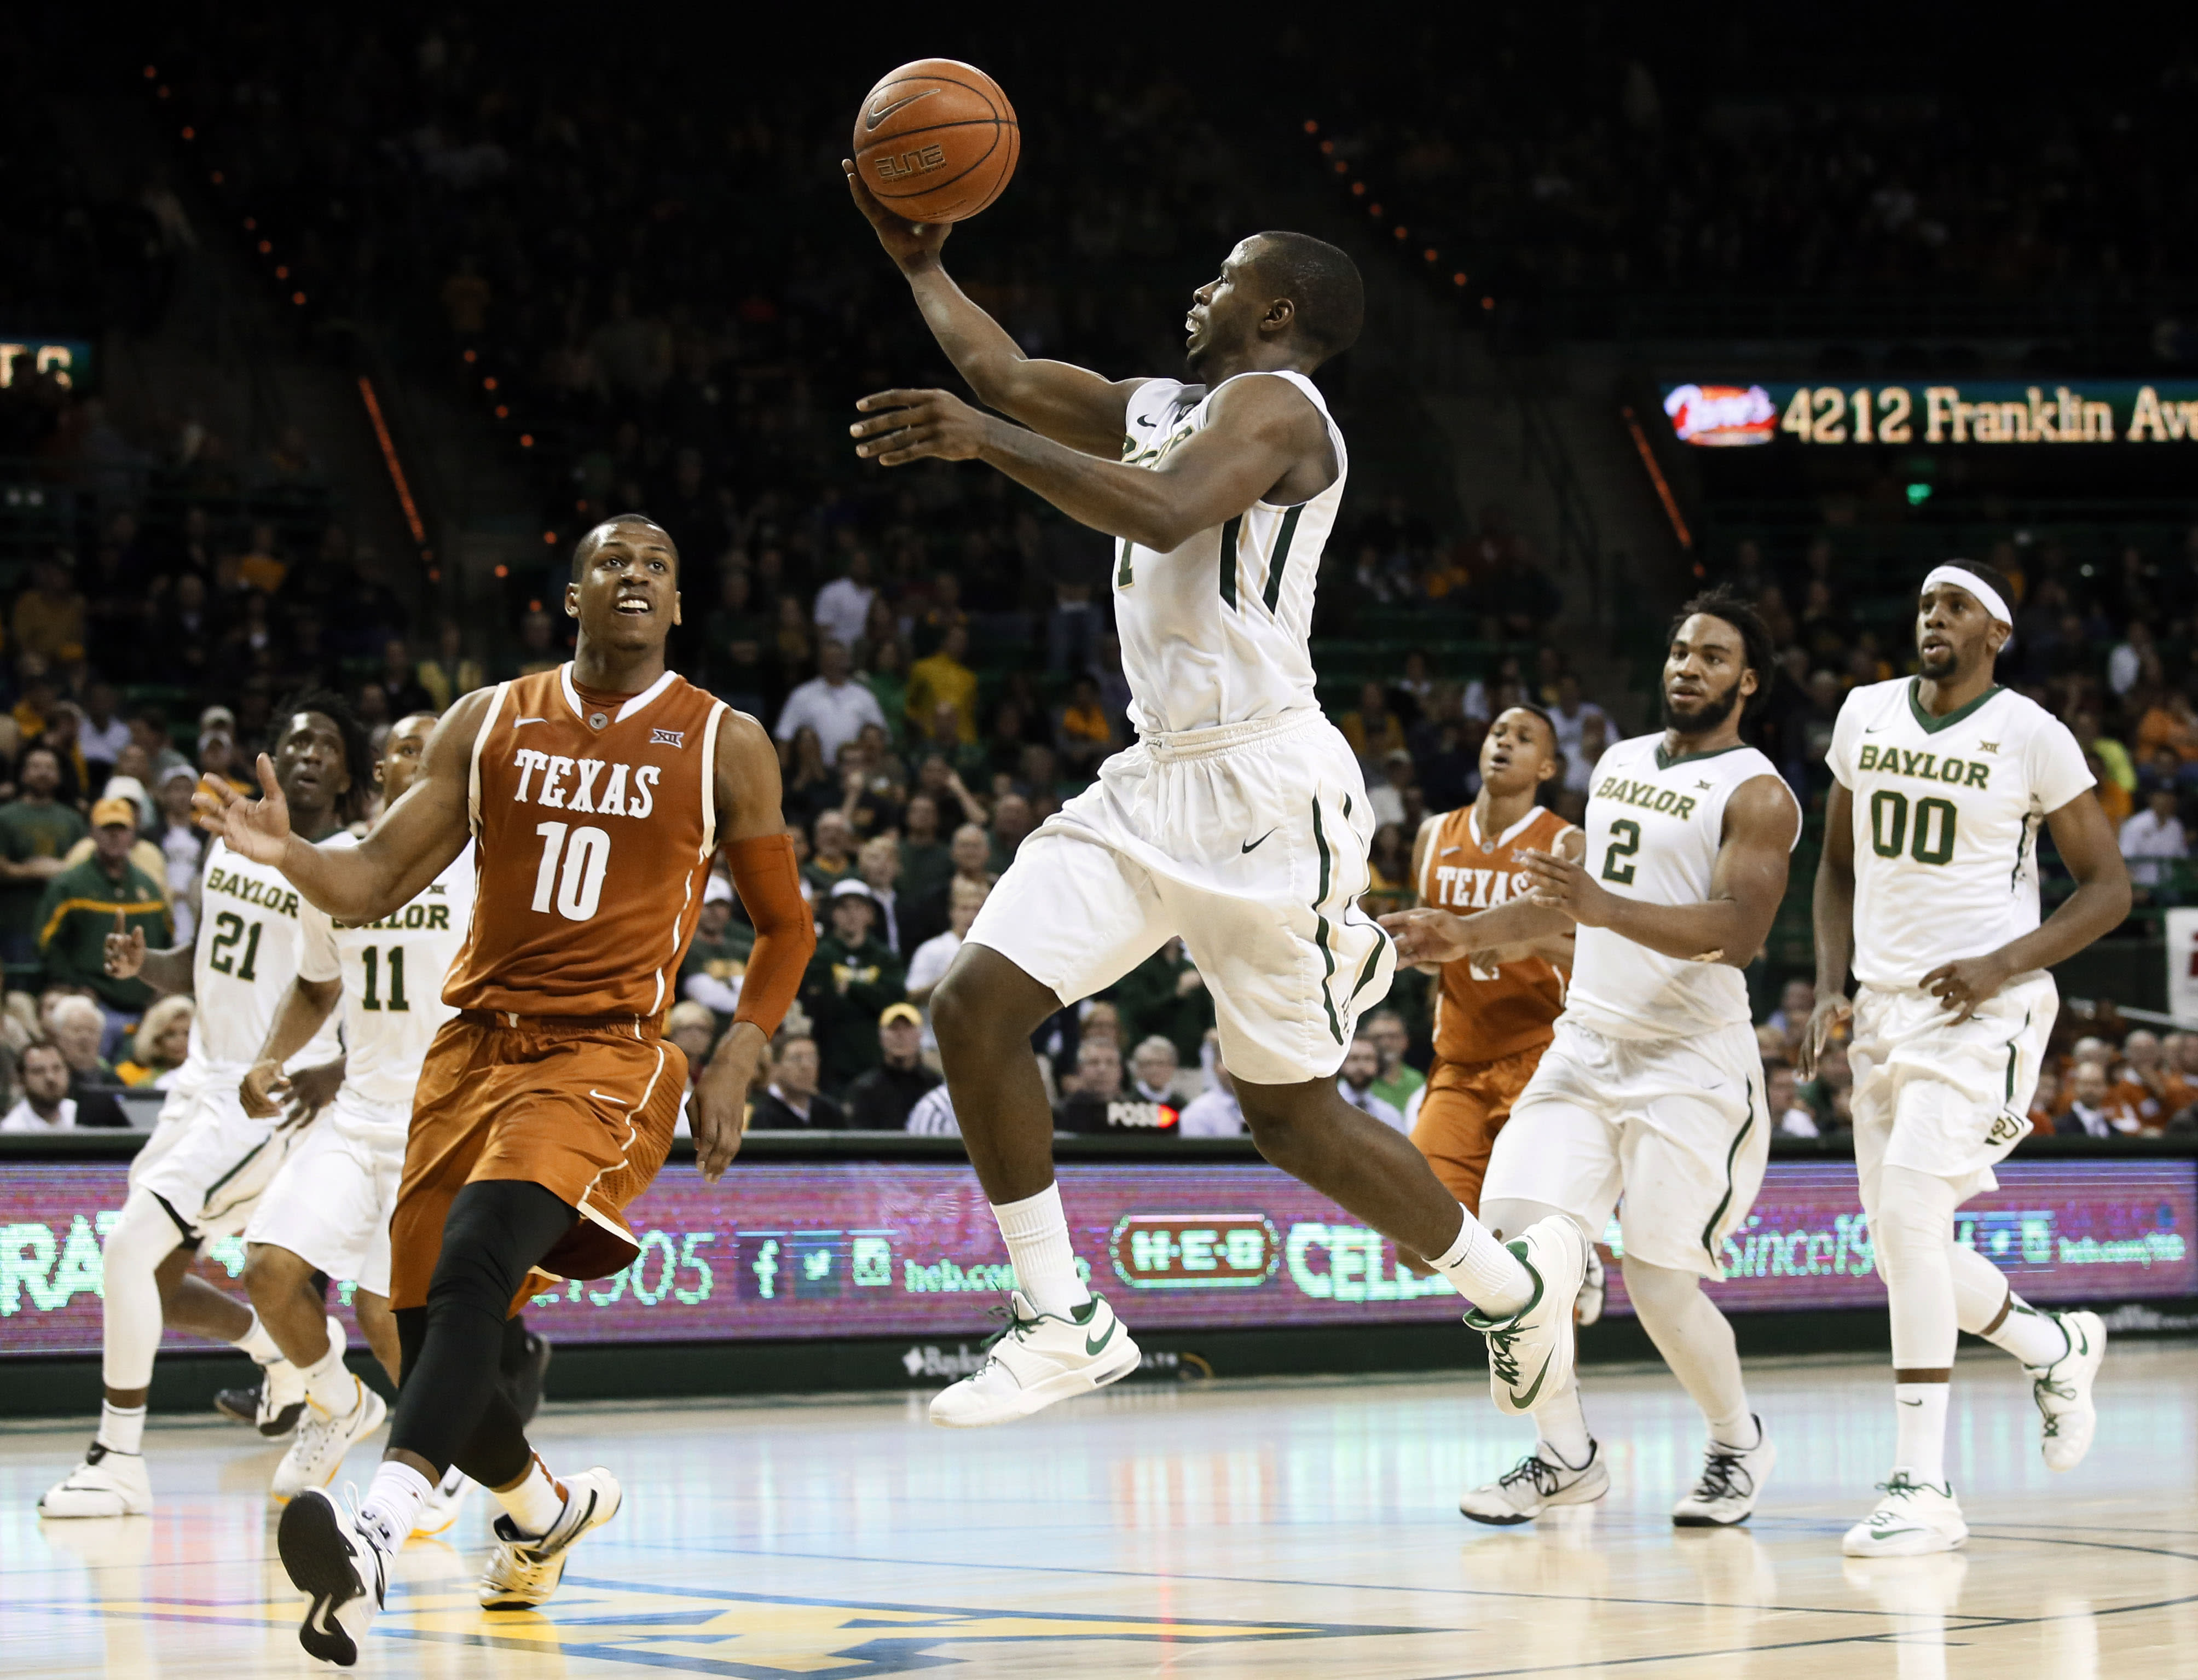 Chery lifts No. 20 Baylor to rout of No. 19 Texas 83-60